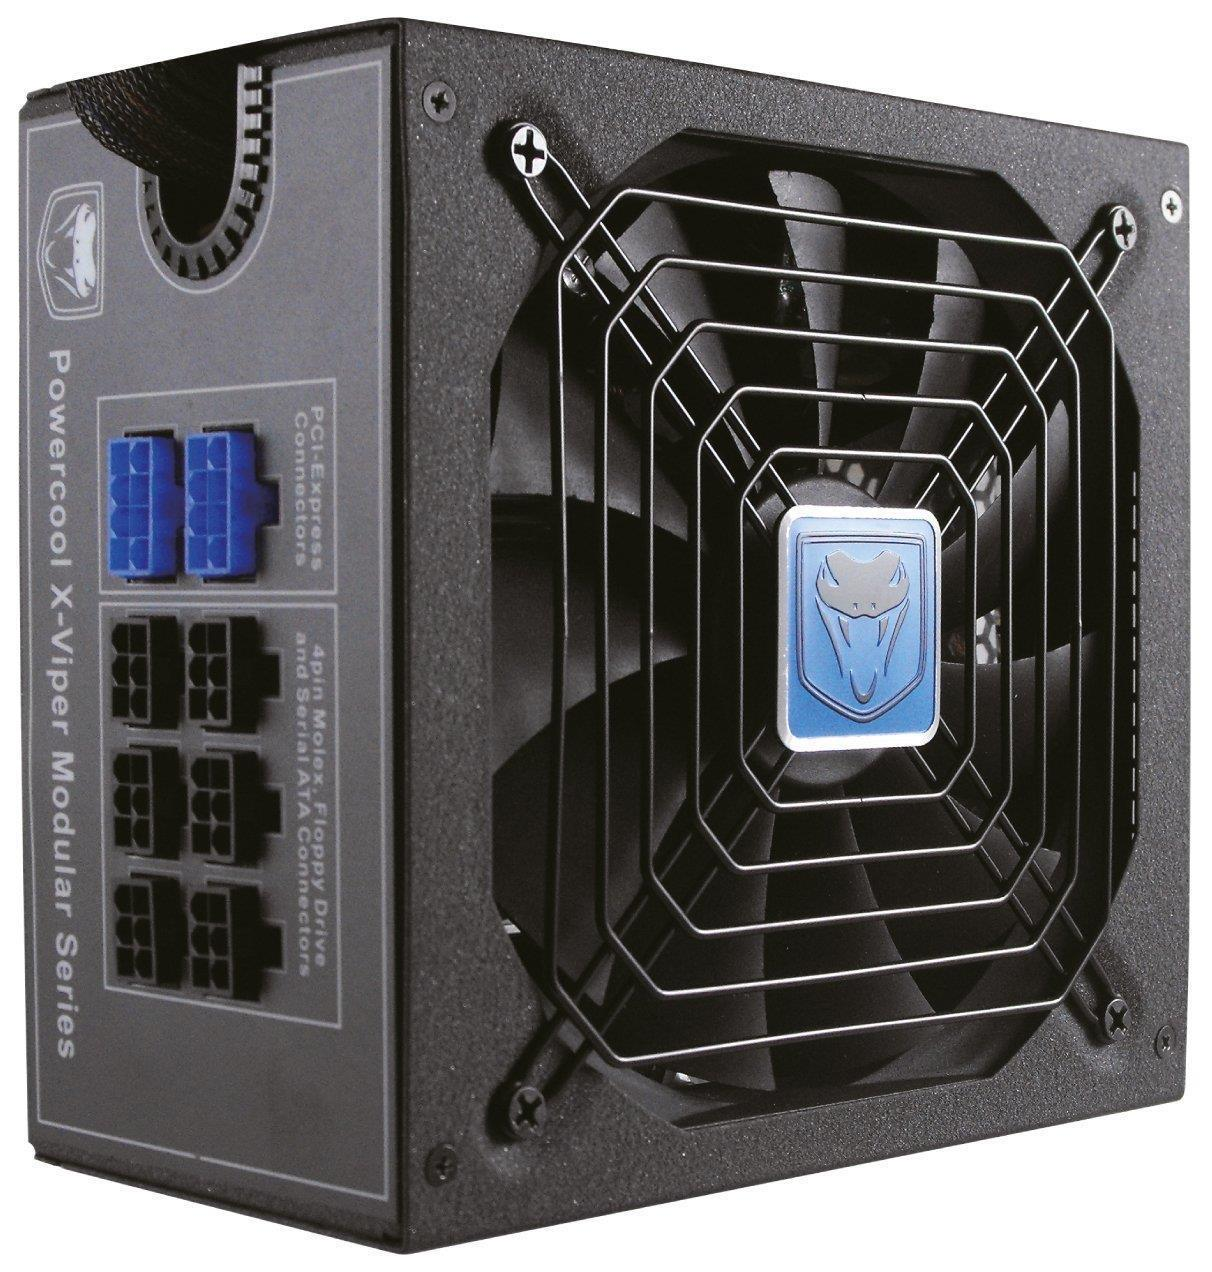 Powercool X-Viper 650W Power Supply 80 Plus Bronze